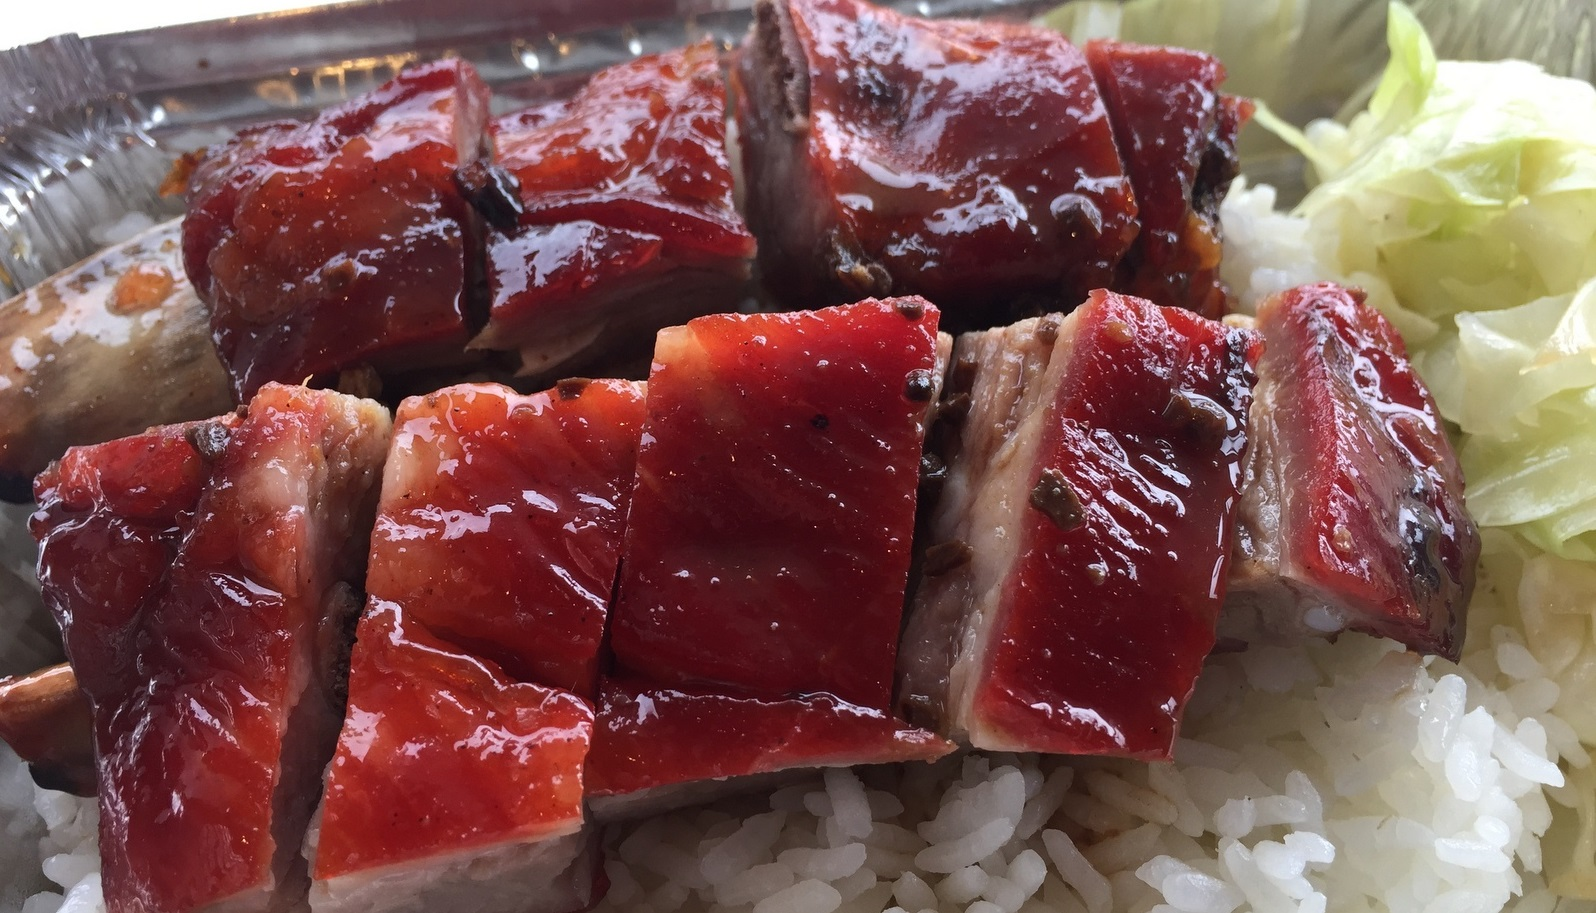 Pork spare ribs, rice and cabbage, $5.25 from Eddie's Chophouse. (Andrew Galarneau/Buffalo News)